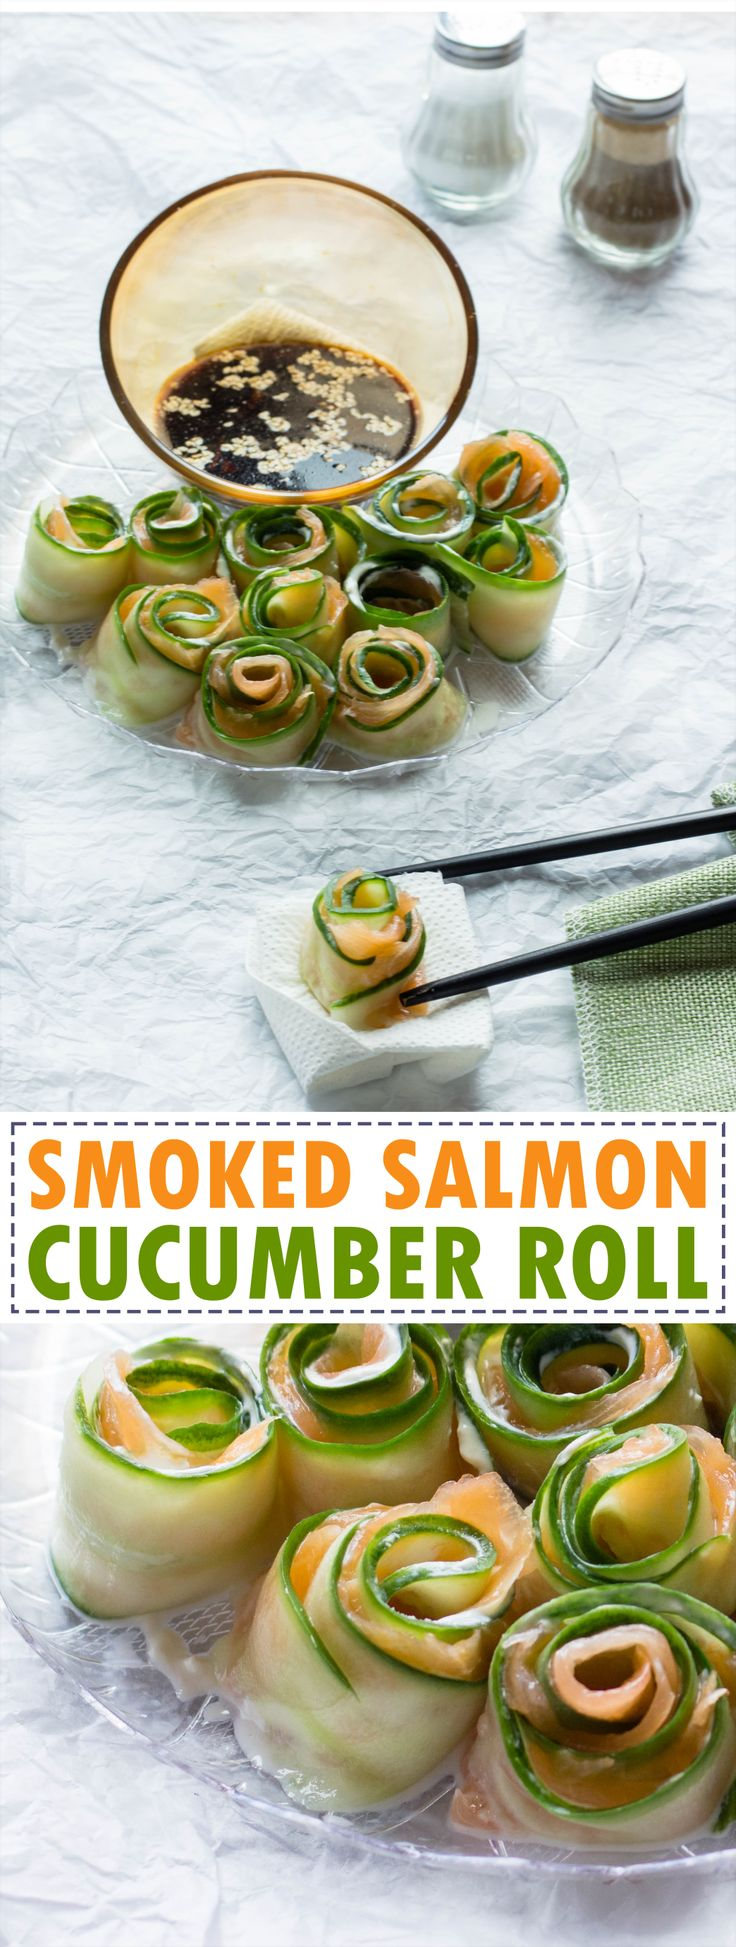 Smoked salmon cucumber roll is a great refreshing starter for the hot seasons. It can be prepared in under 15 mins and requires only three ingredients.